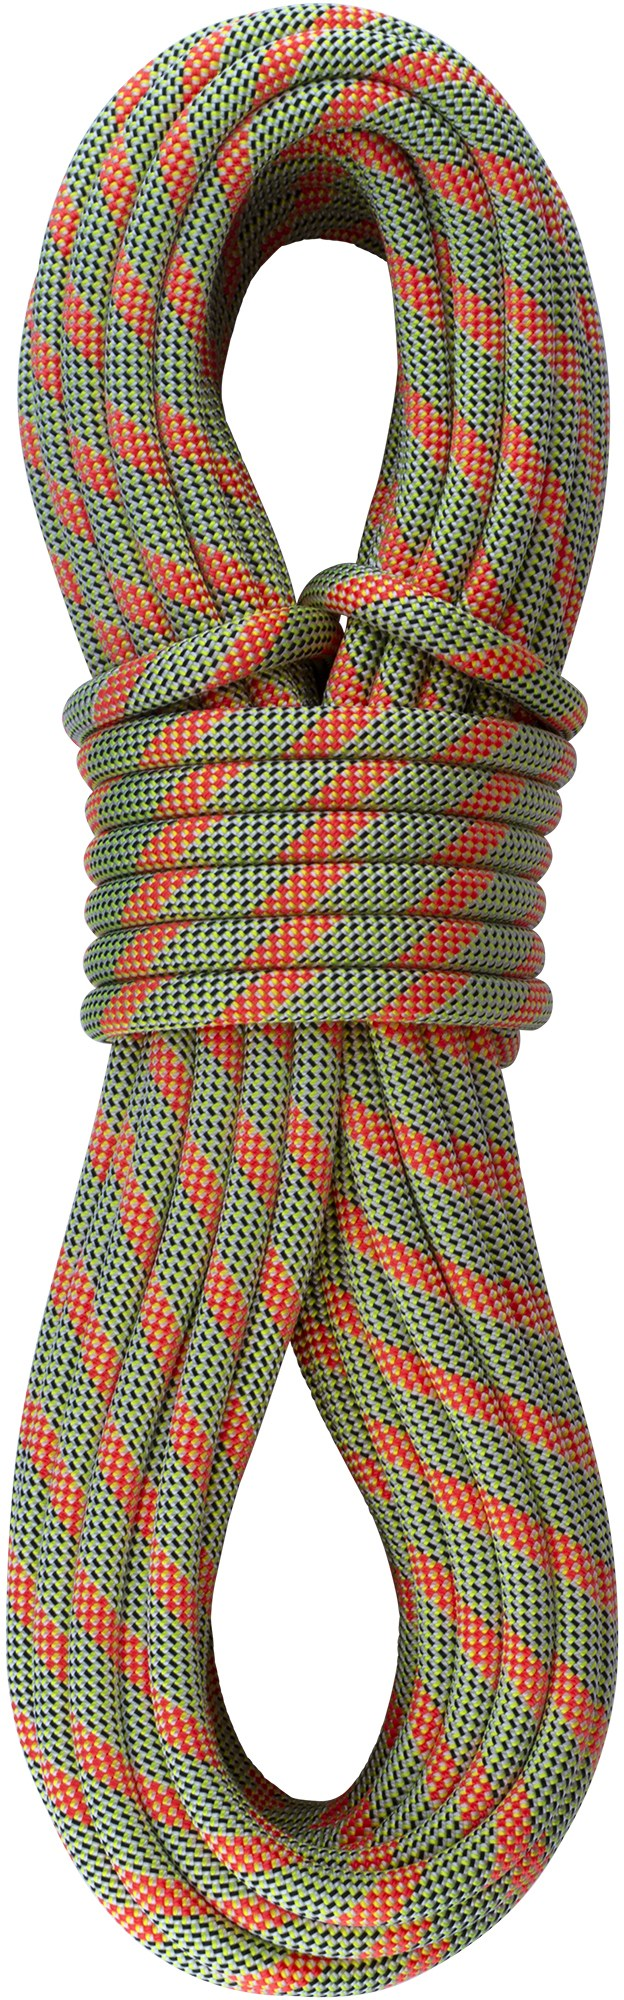 Sterling Rope Evolution VR9 9.8mm x 60m Dry-Core Rope